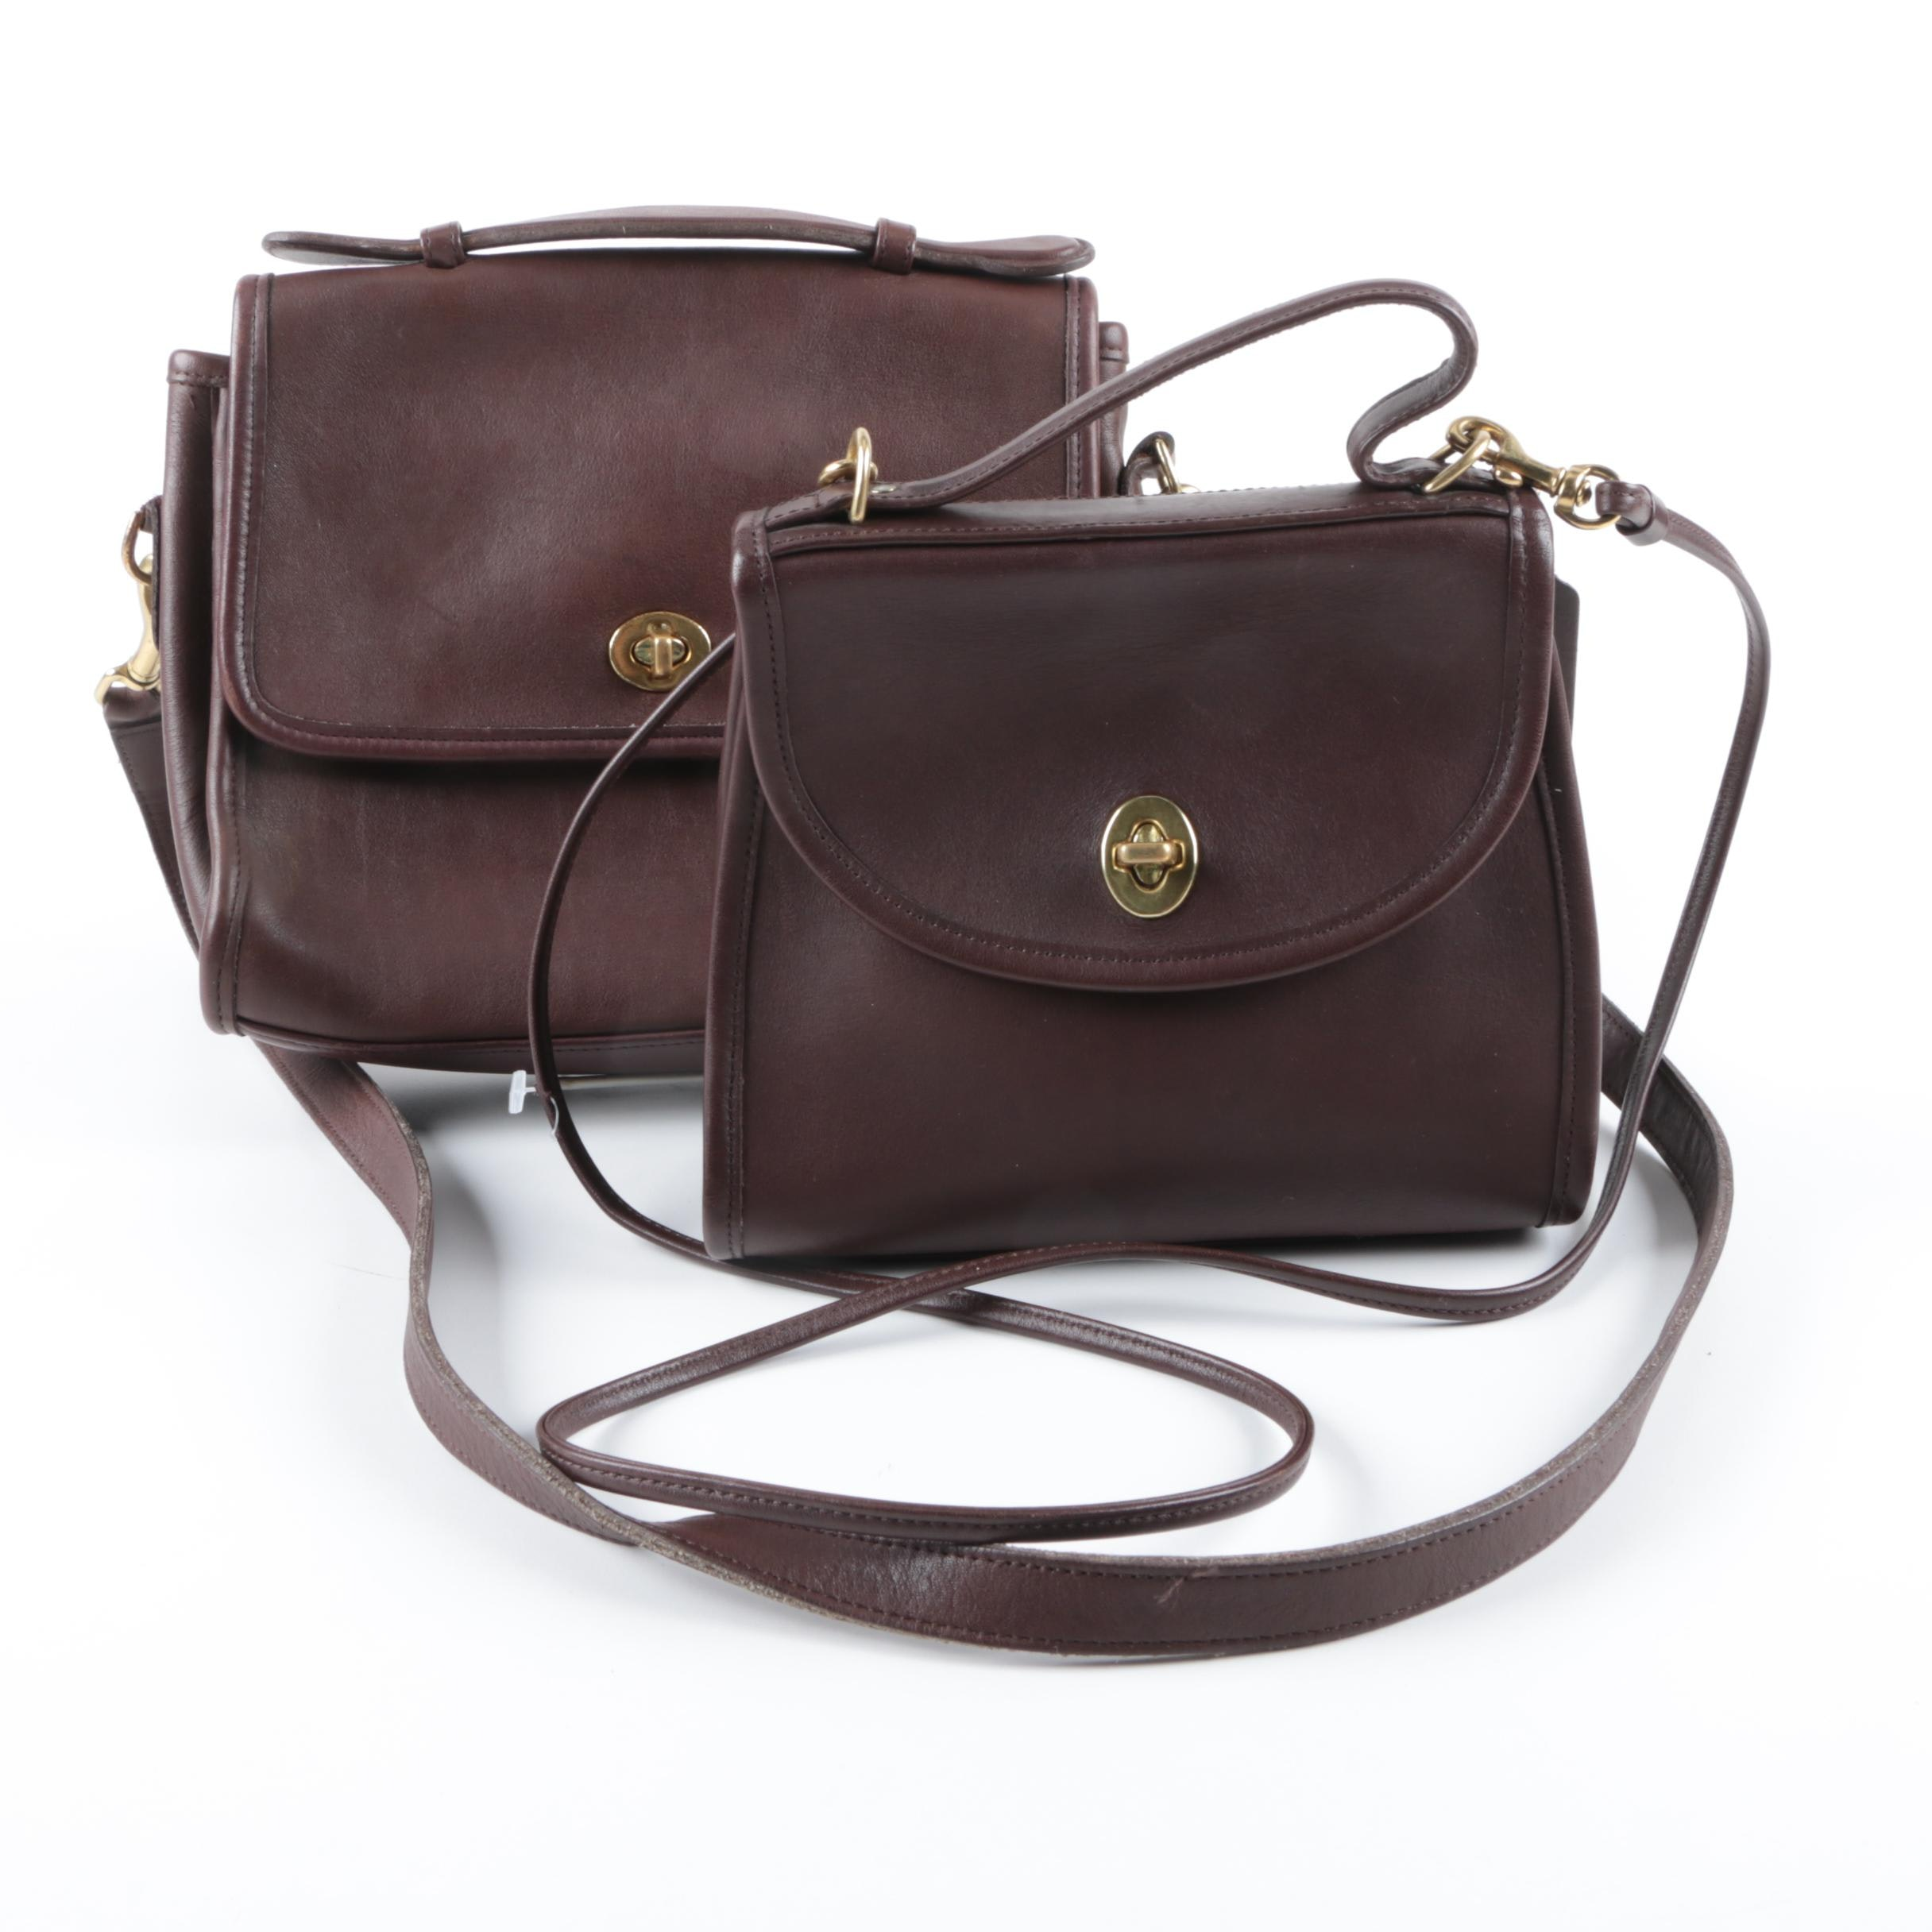 Coach Regina and Court Brown Leather Handbags